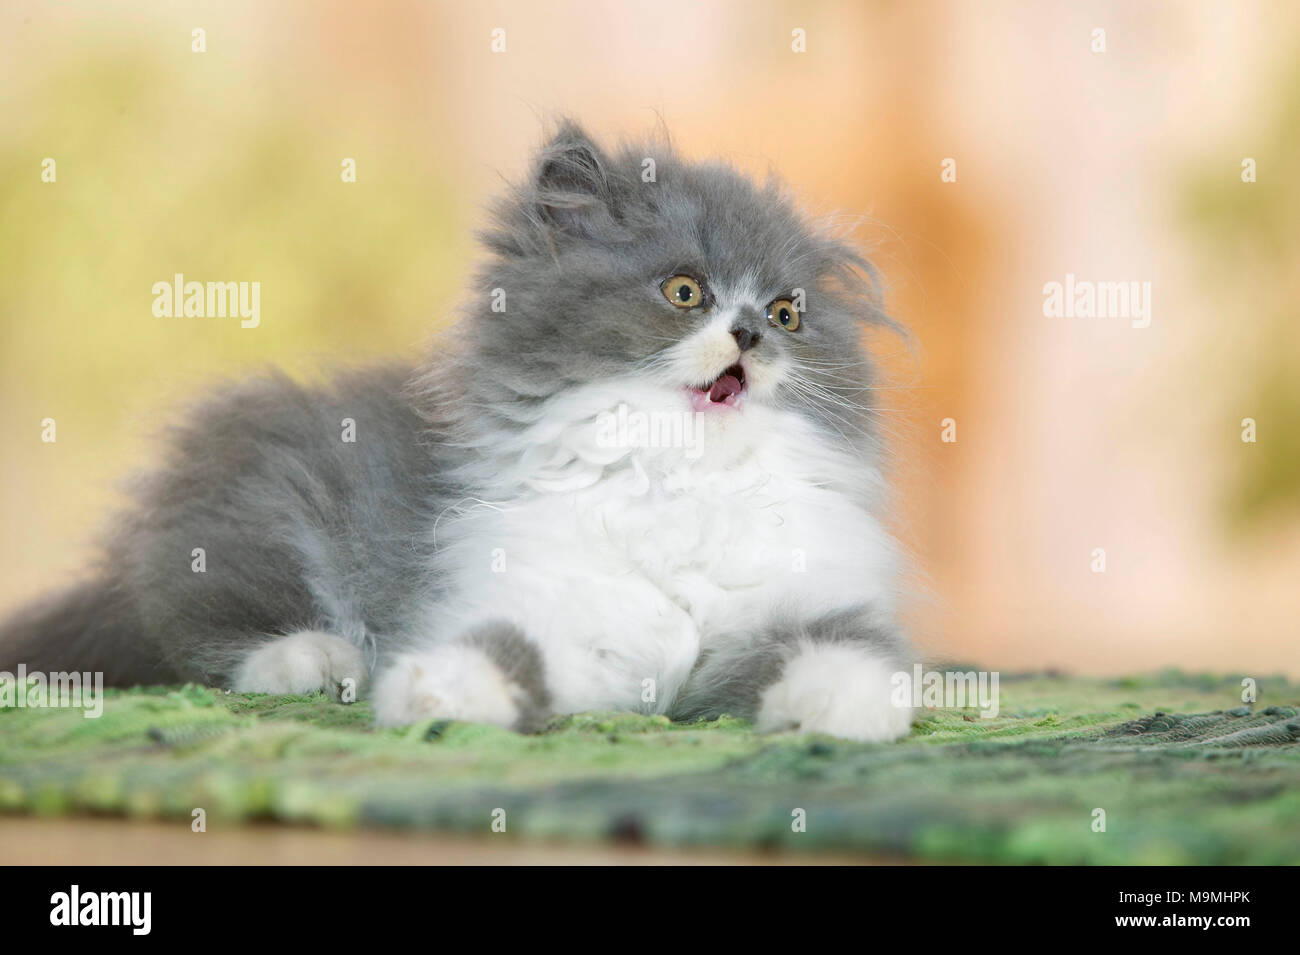 Persian Cat. Kitten lying on a carpet, with mouth open. Germany. - Stock Image